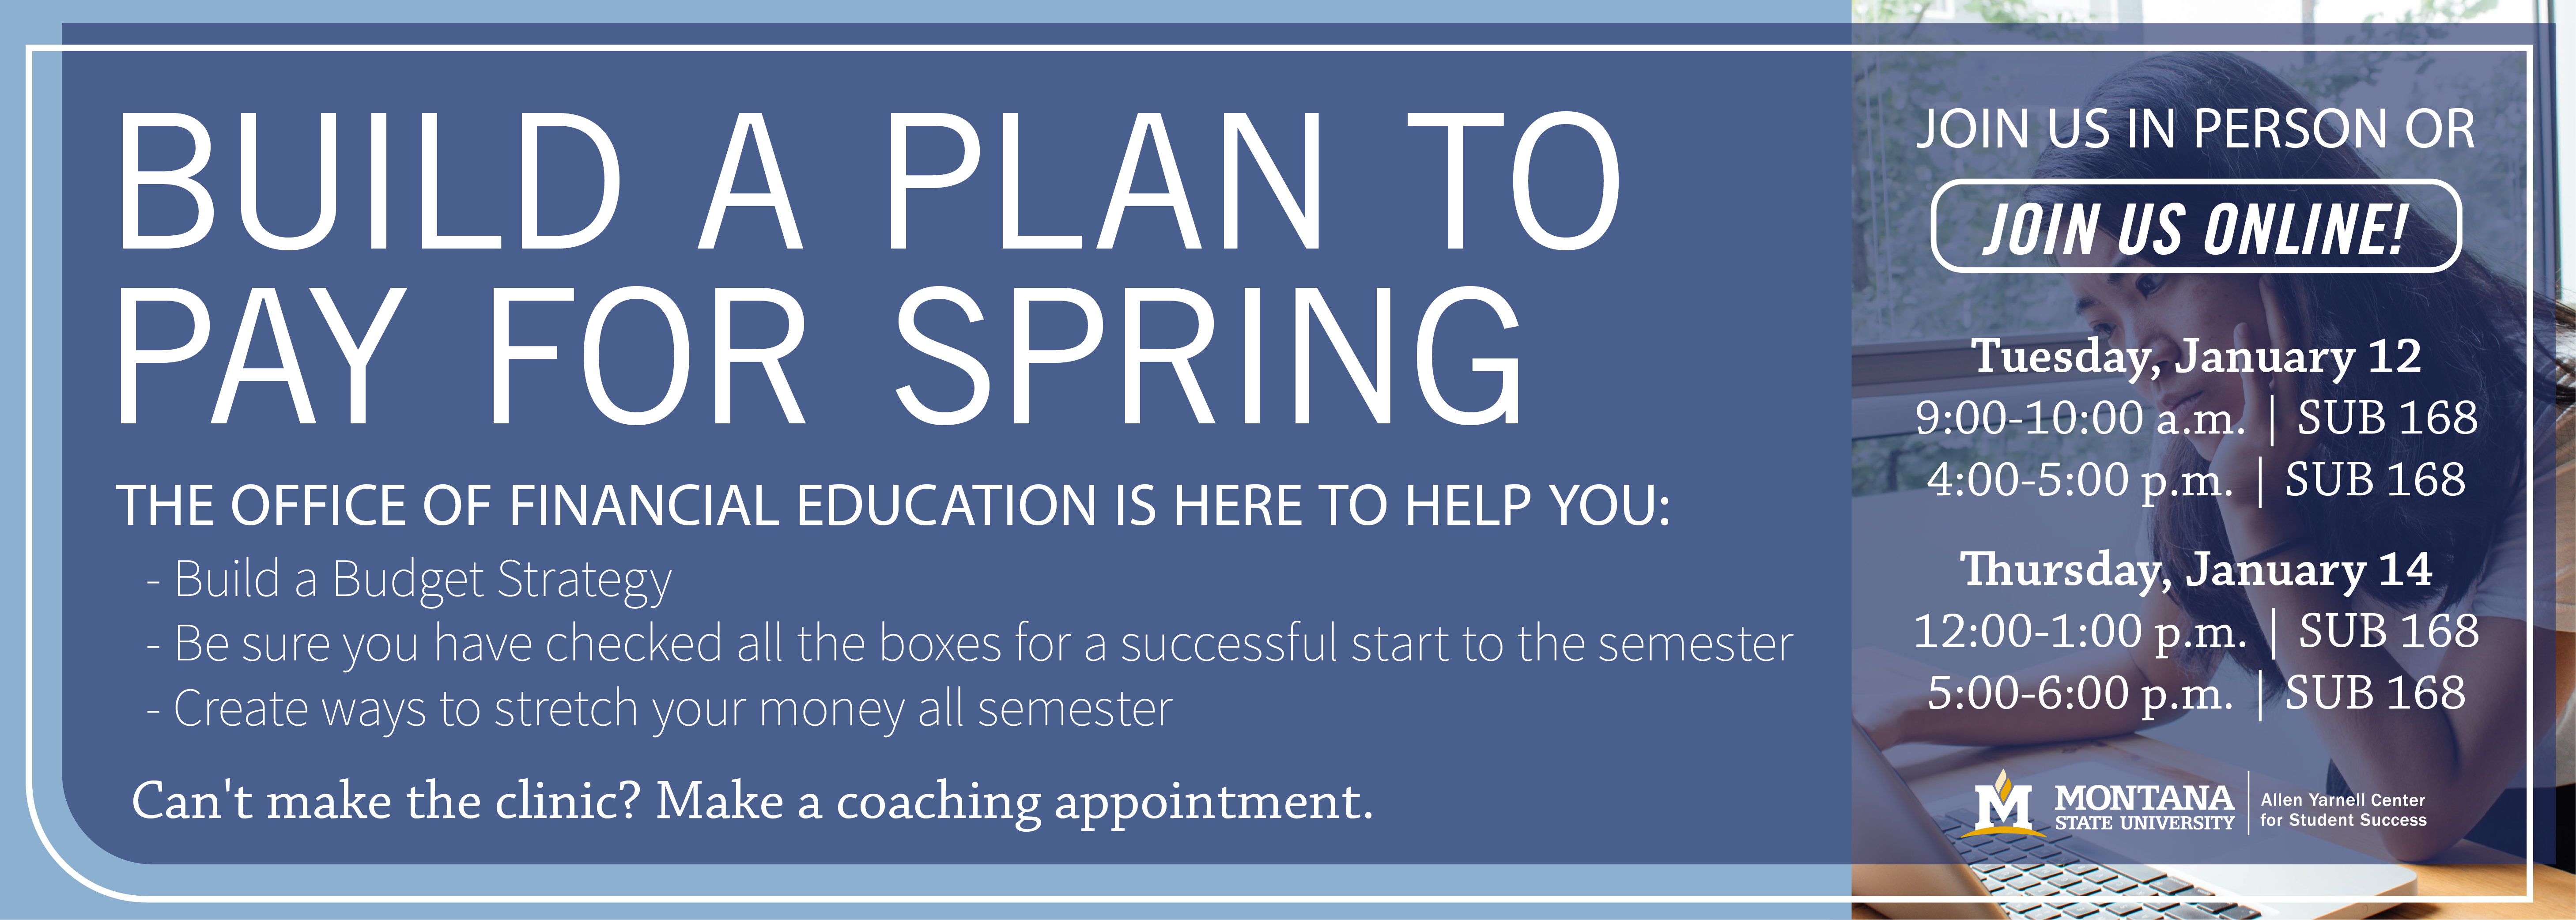 Build a plan to pay for spring